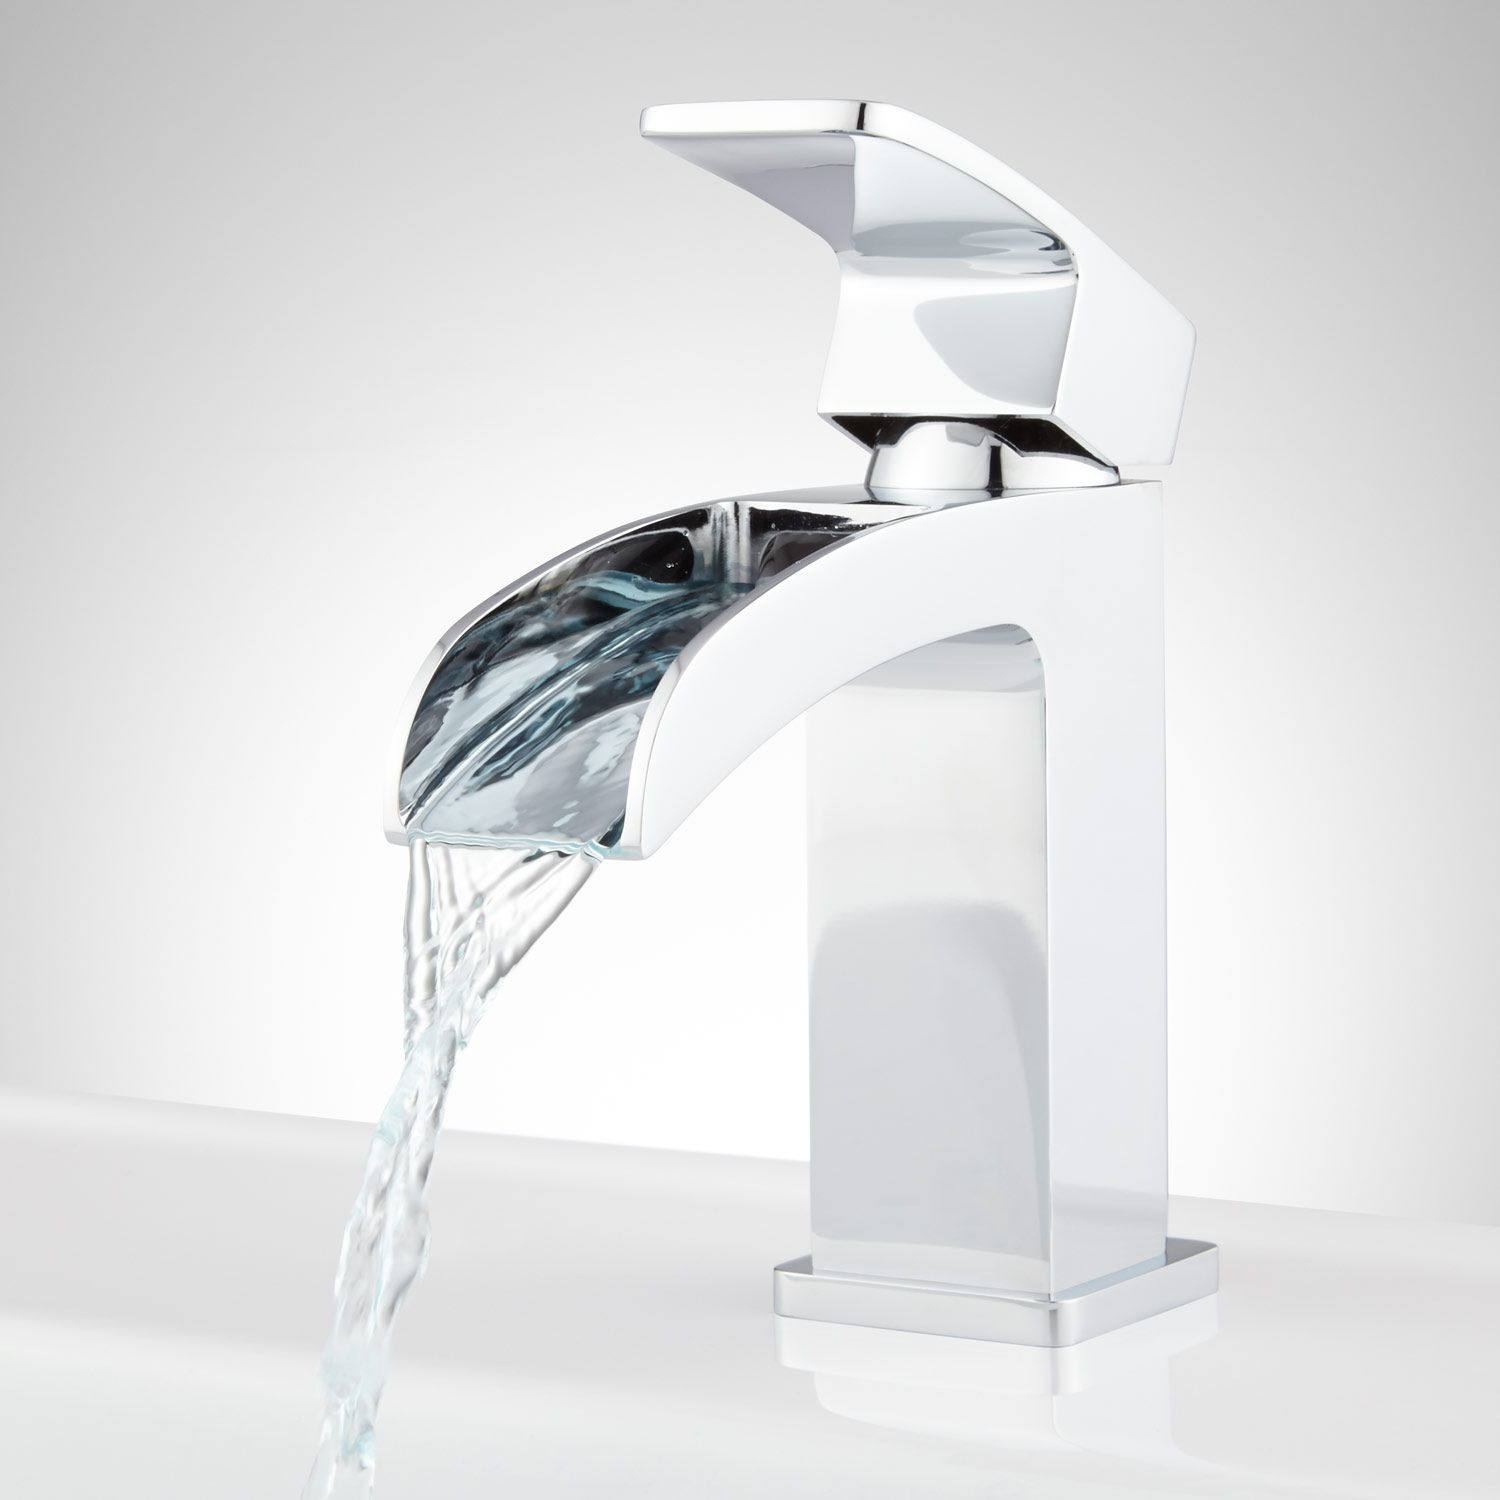 Stevens Waterfall Single-Hole Bathroom Faucet | Faucet, Chrome and ...